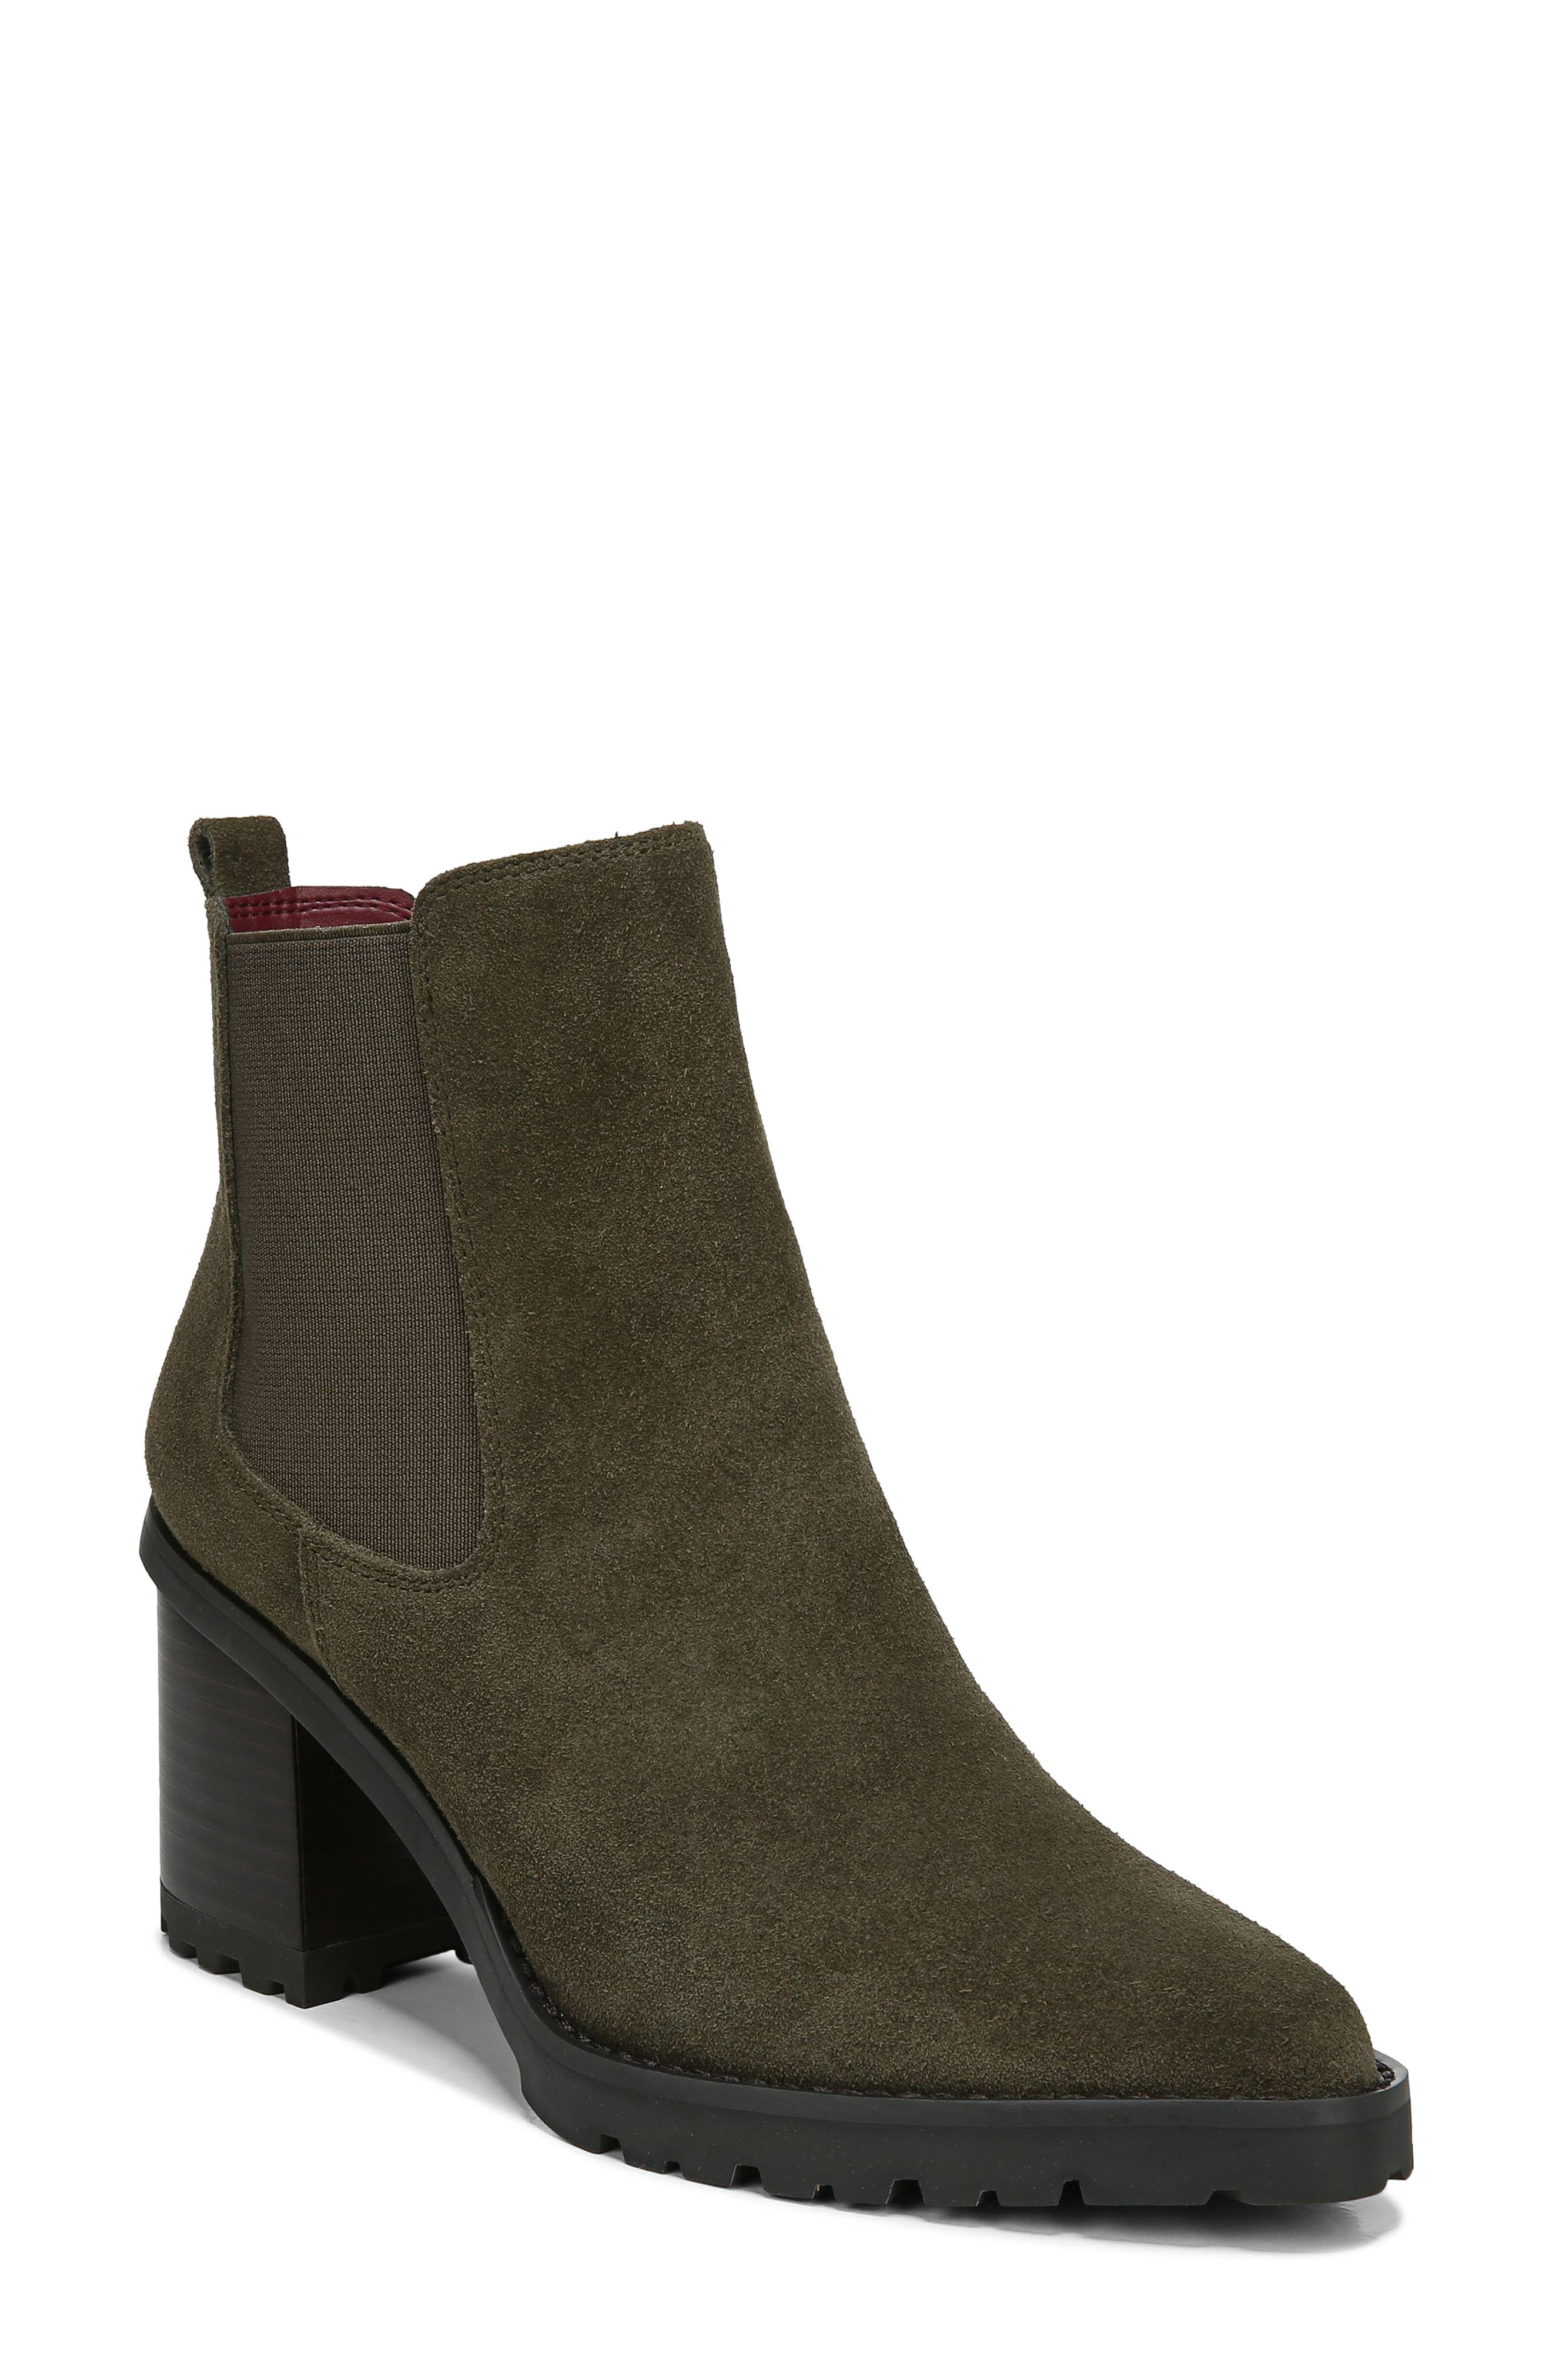 A lug sole brings utilitarian comfort and traction to a simple leather bootie with Chelsea-inspired details and an easy zipper at the side. Style Name: Franco Sarto Trent Bootie (Women). Style Number: 6123134. Available in stores.